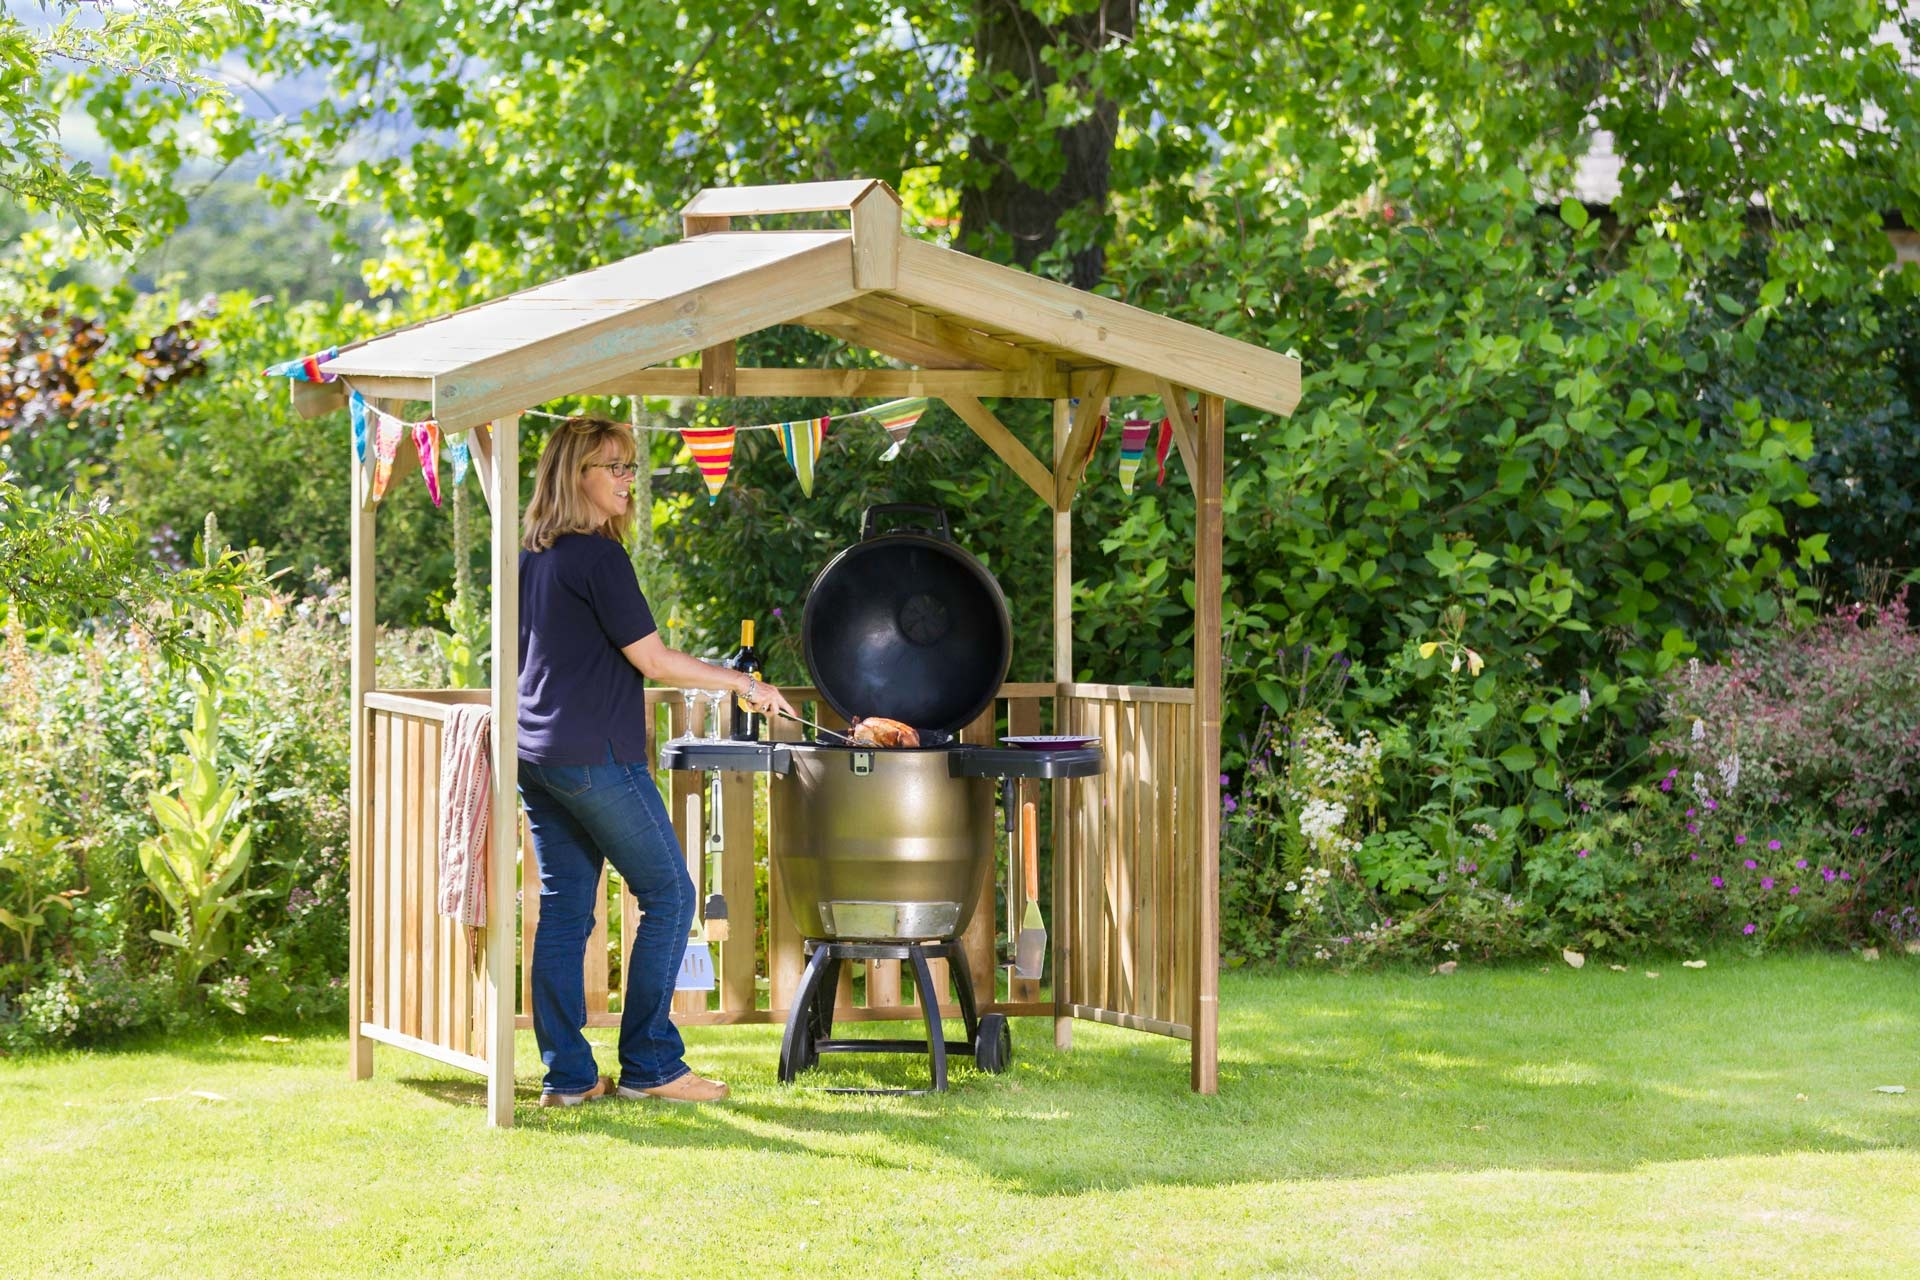 Ashton Gazebo or BBQ shelter from Supreme Landscaping Products